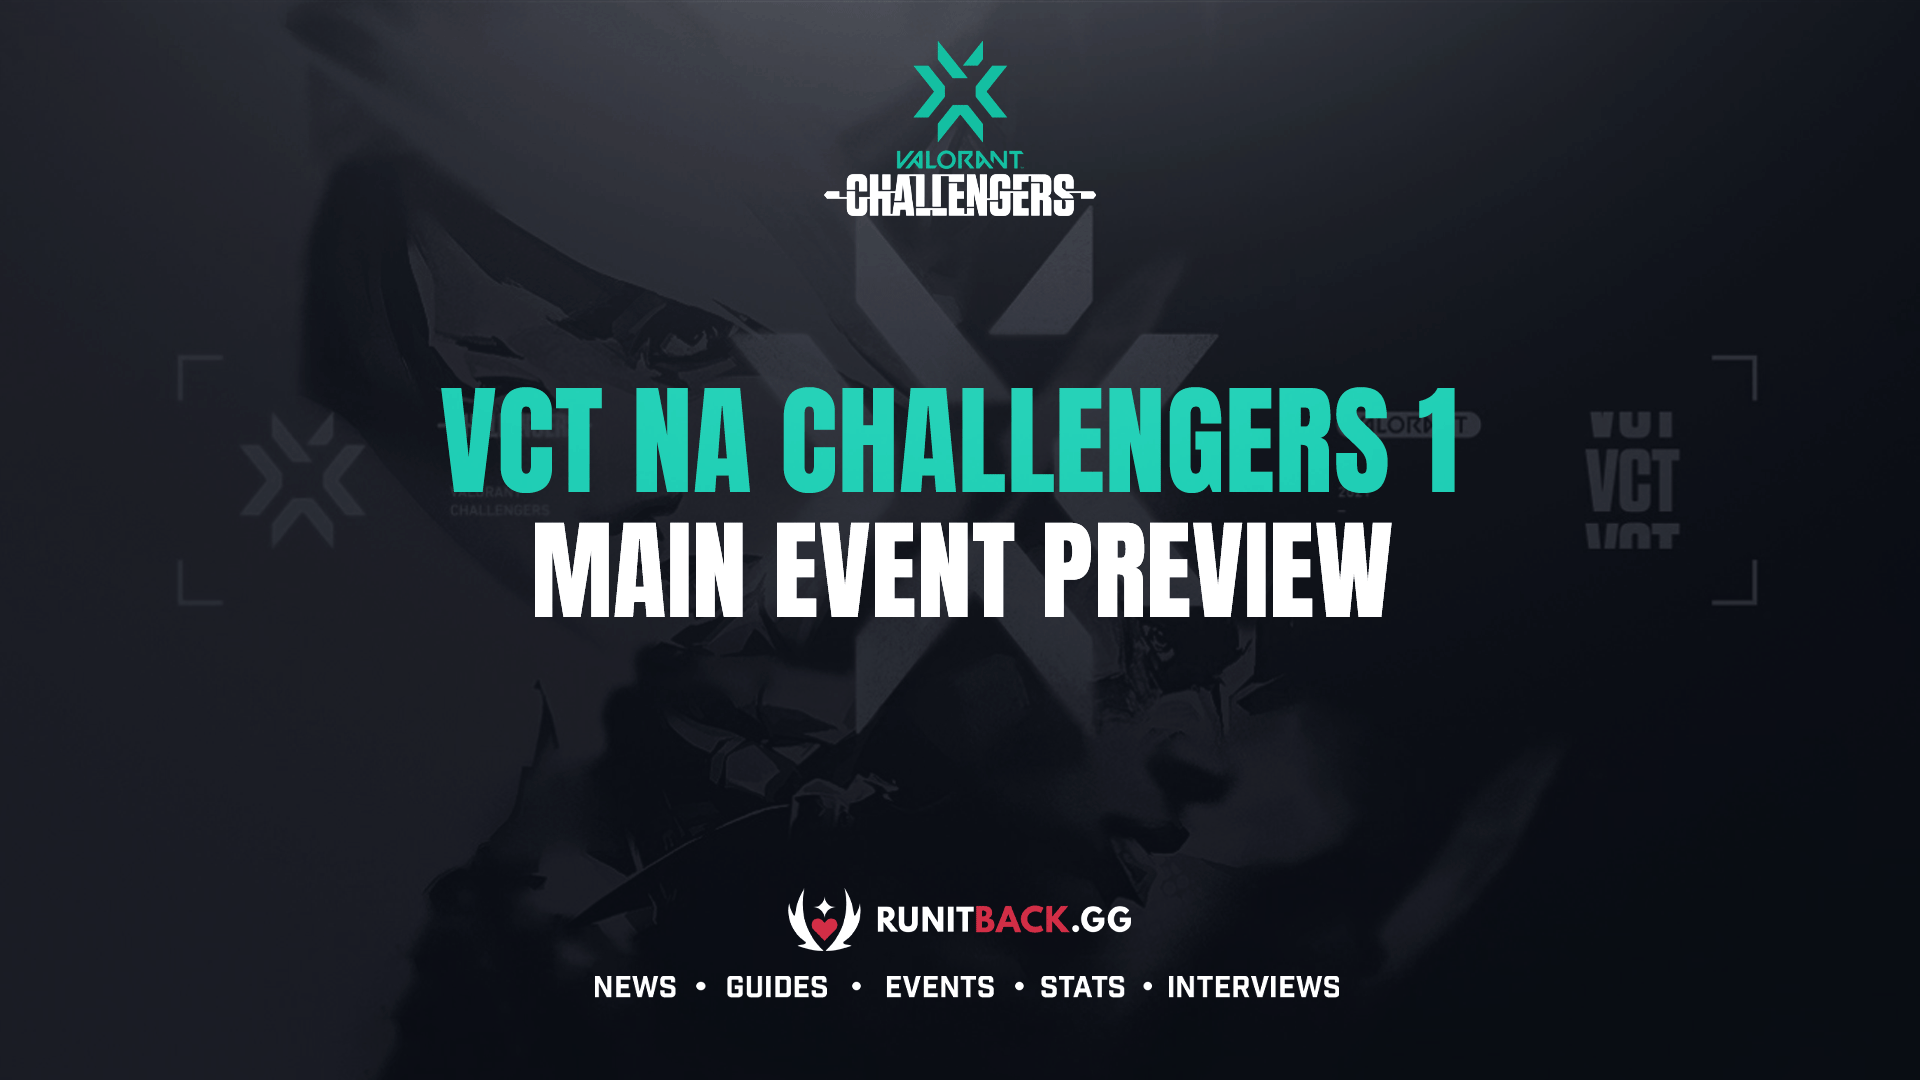 VCT NA Stage 3 Challengers 1 Main Event Preview